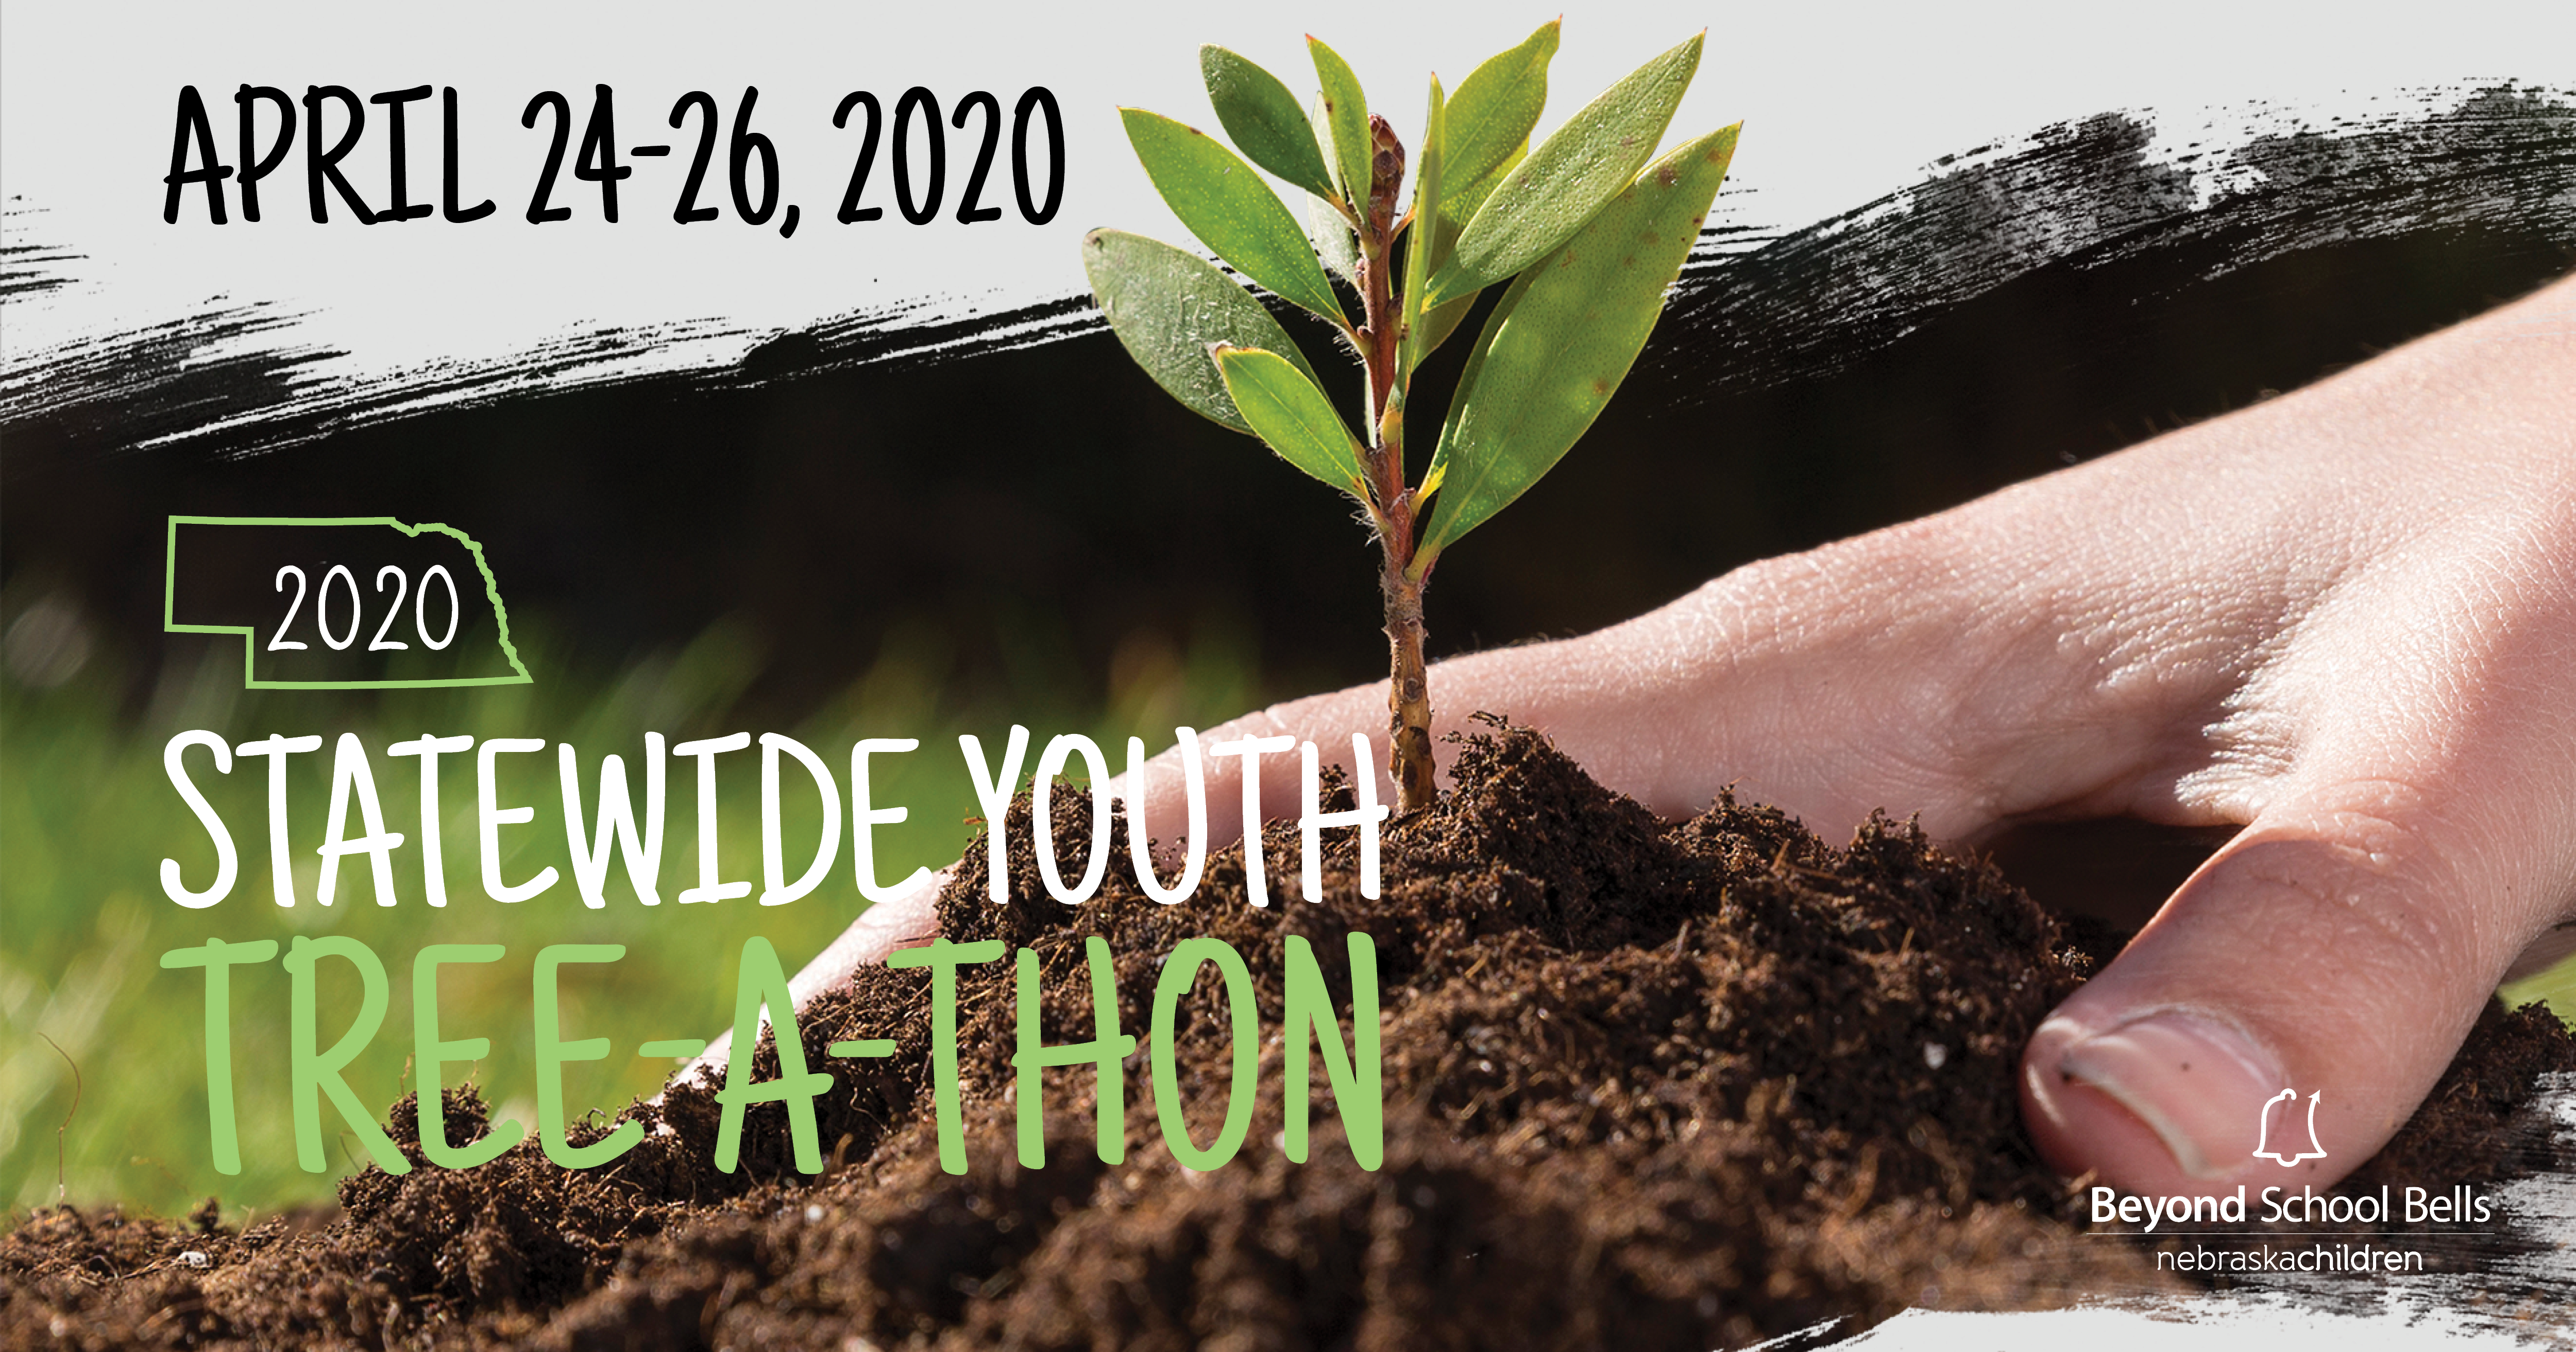 2020 Statewide Tree-A-Thon